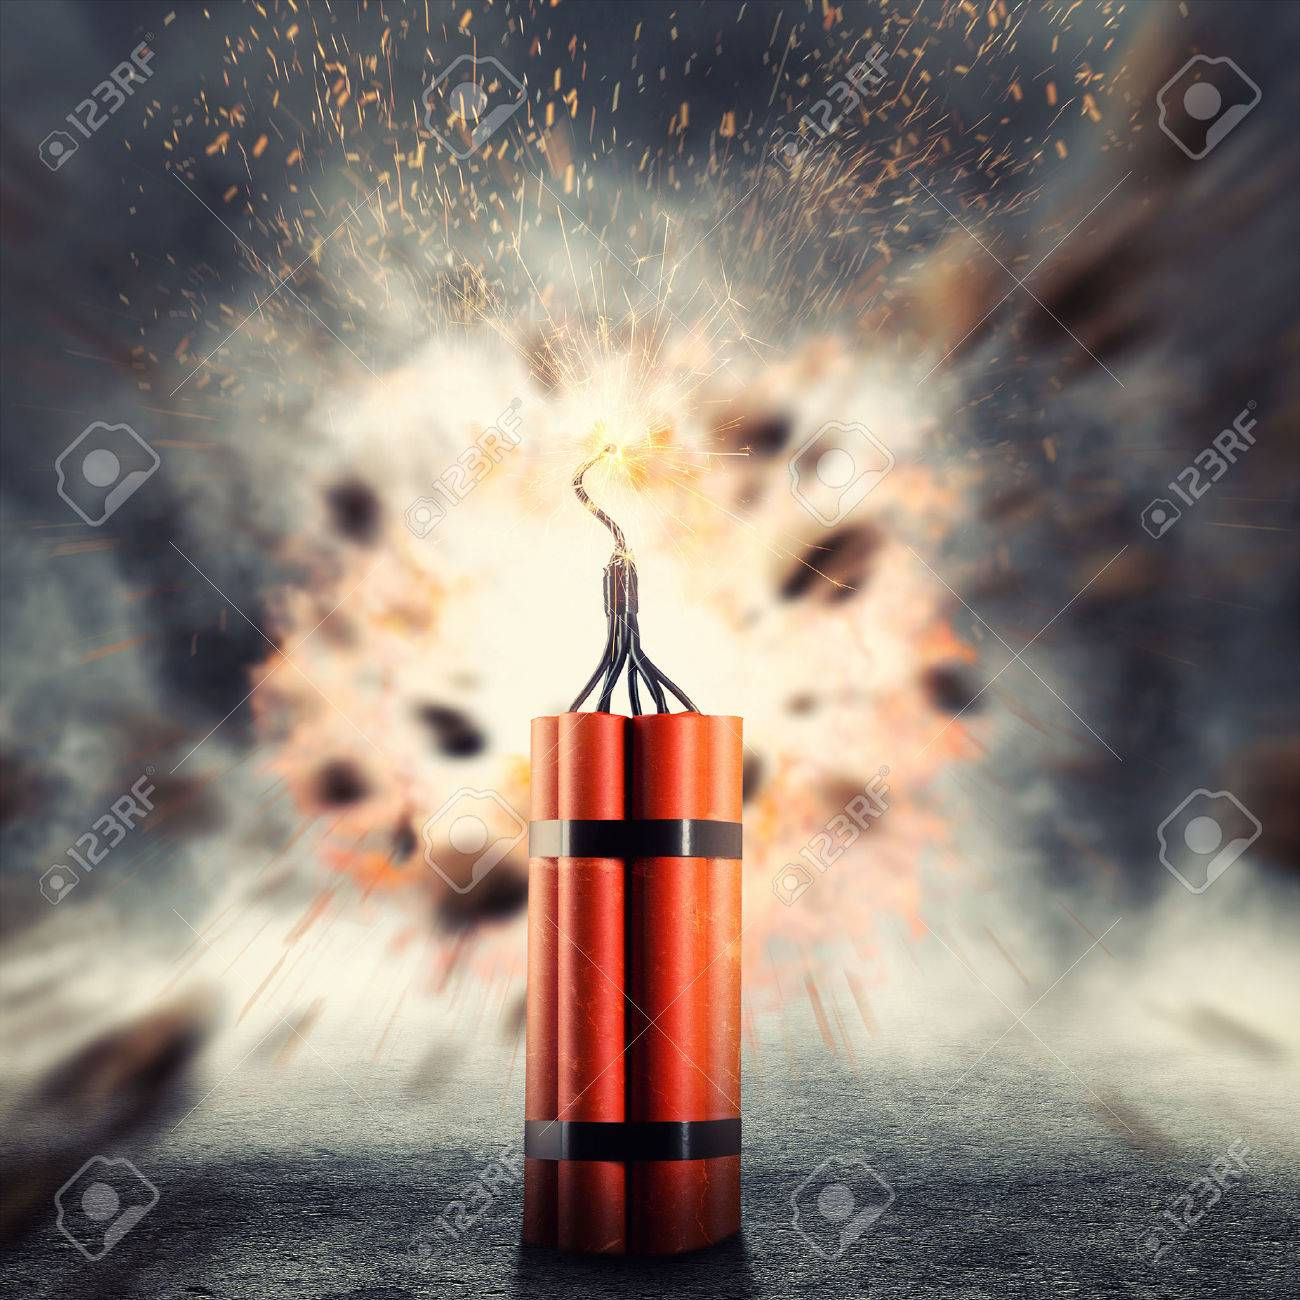 Dangerous dynamite exploding against abstract background - 46391421